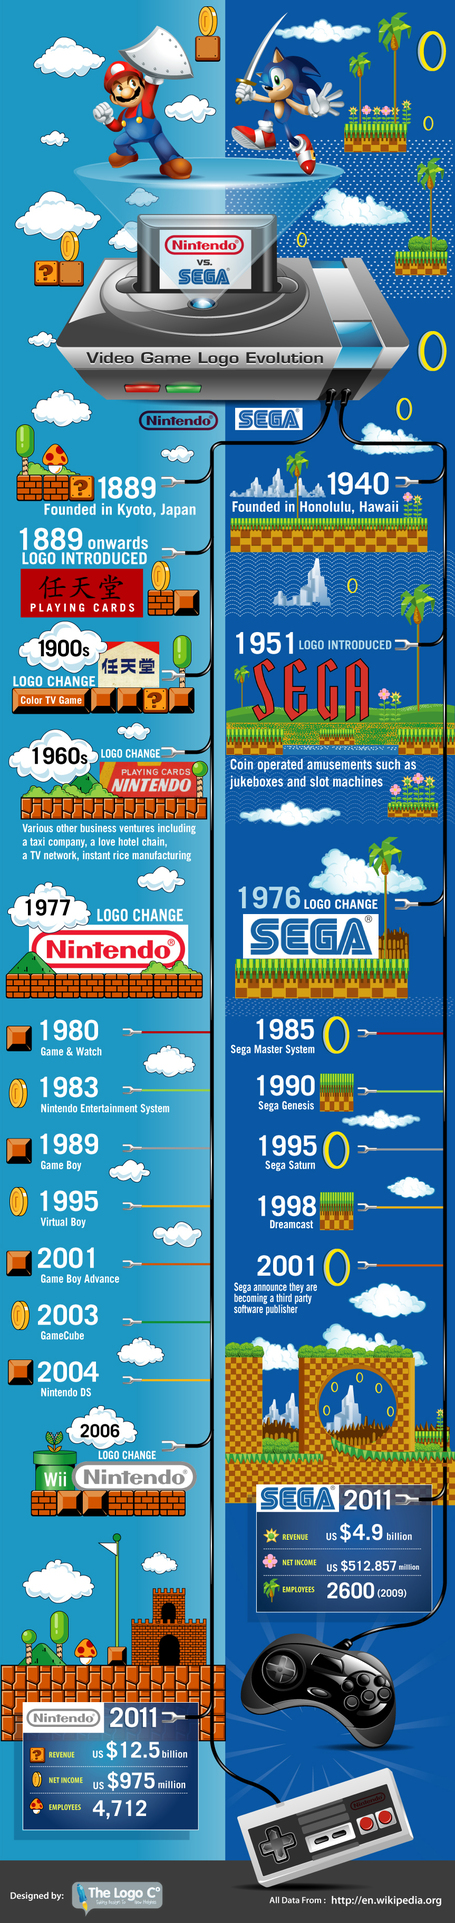 Nintendo vs Sega: Video Game Logo Evolution | Social Media & Comunicación Audiovisual | Scoop.it